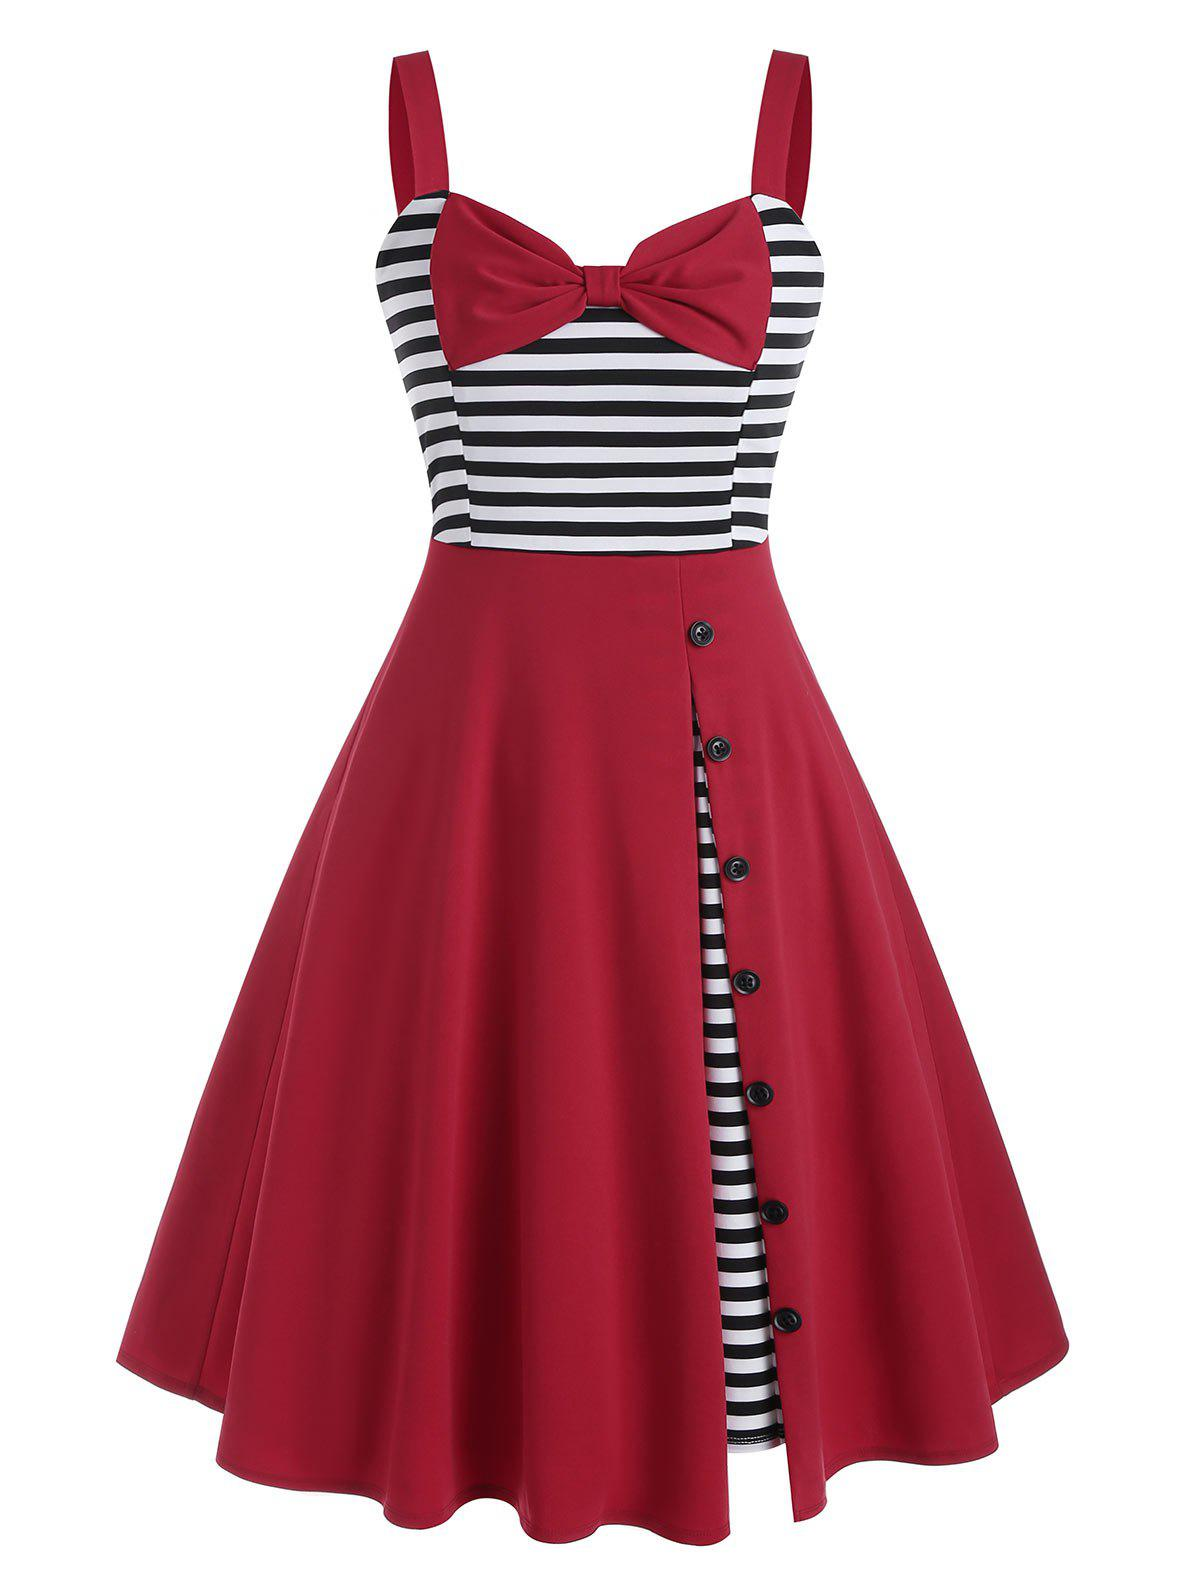 Trendy Bowknot Striped Panel Buttoned 1950s Dress